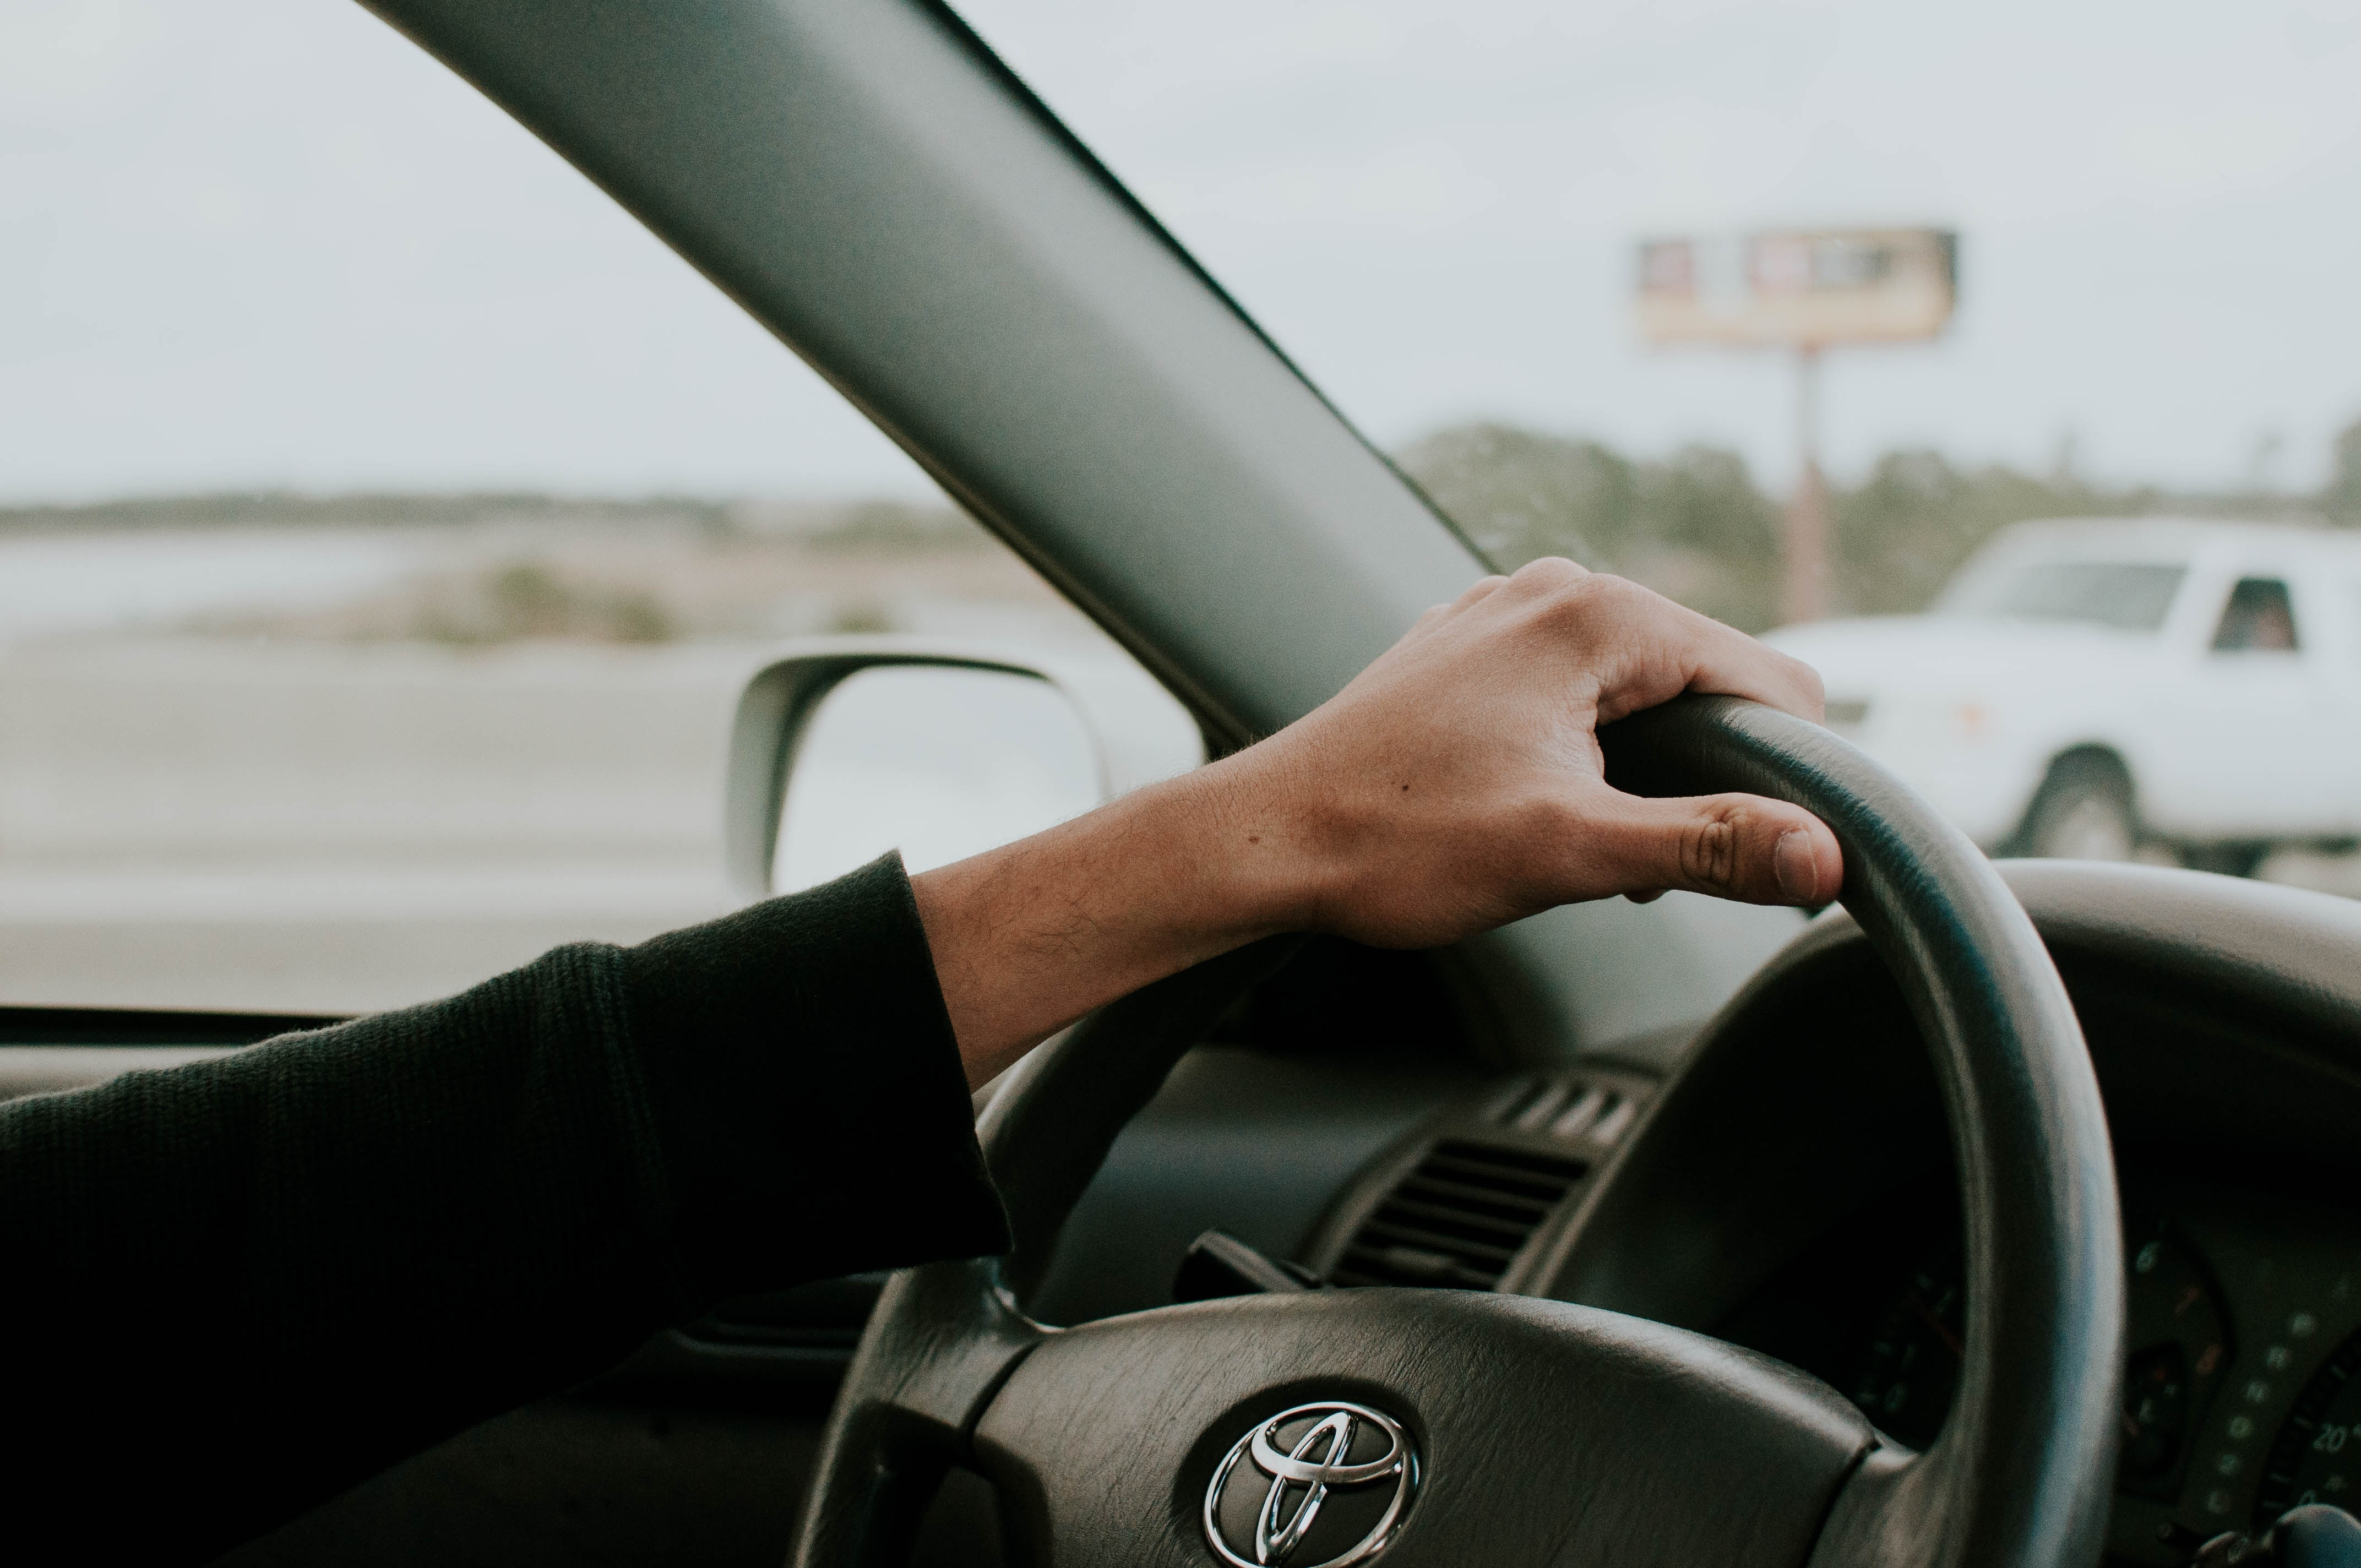 Ontario S 2019 Auto Insurance Reform A Step In The Right Direction For Ontario Drivers Mcleish Orlando Personal Injury Lawyers Toronto